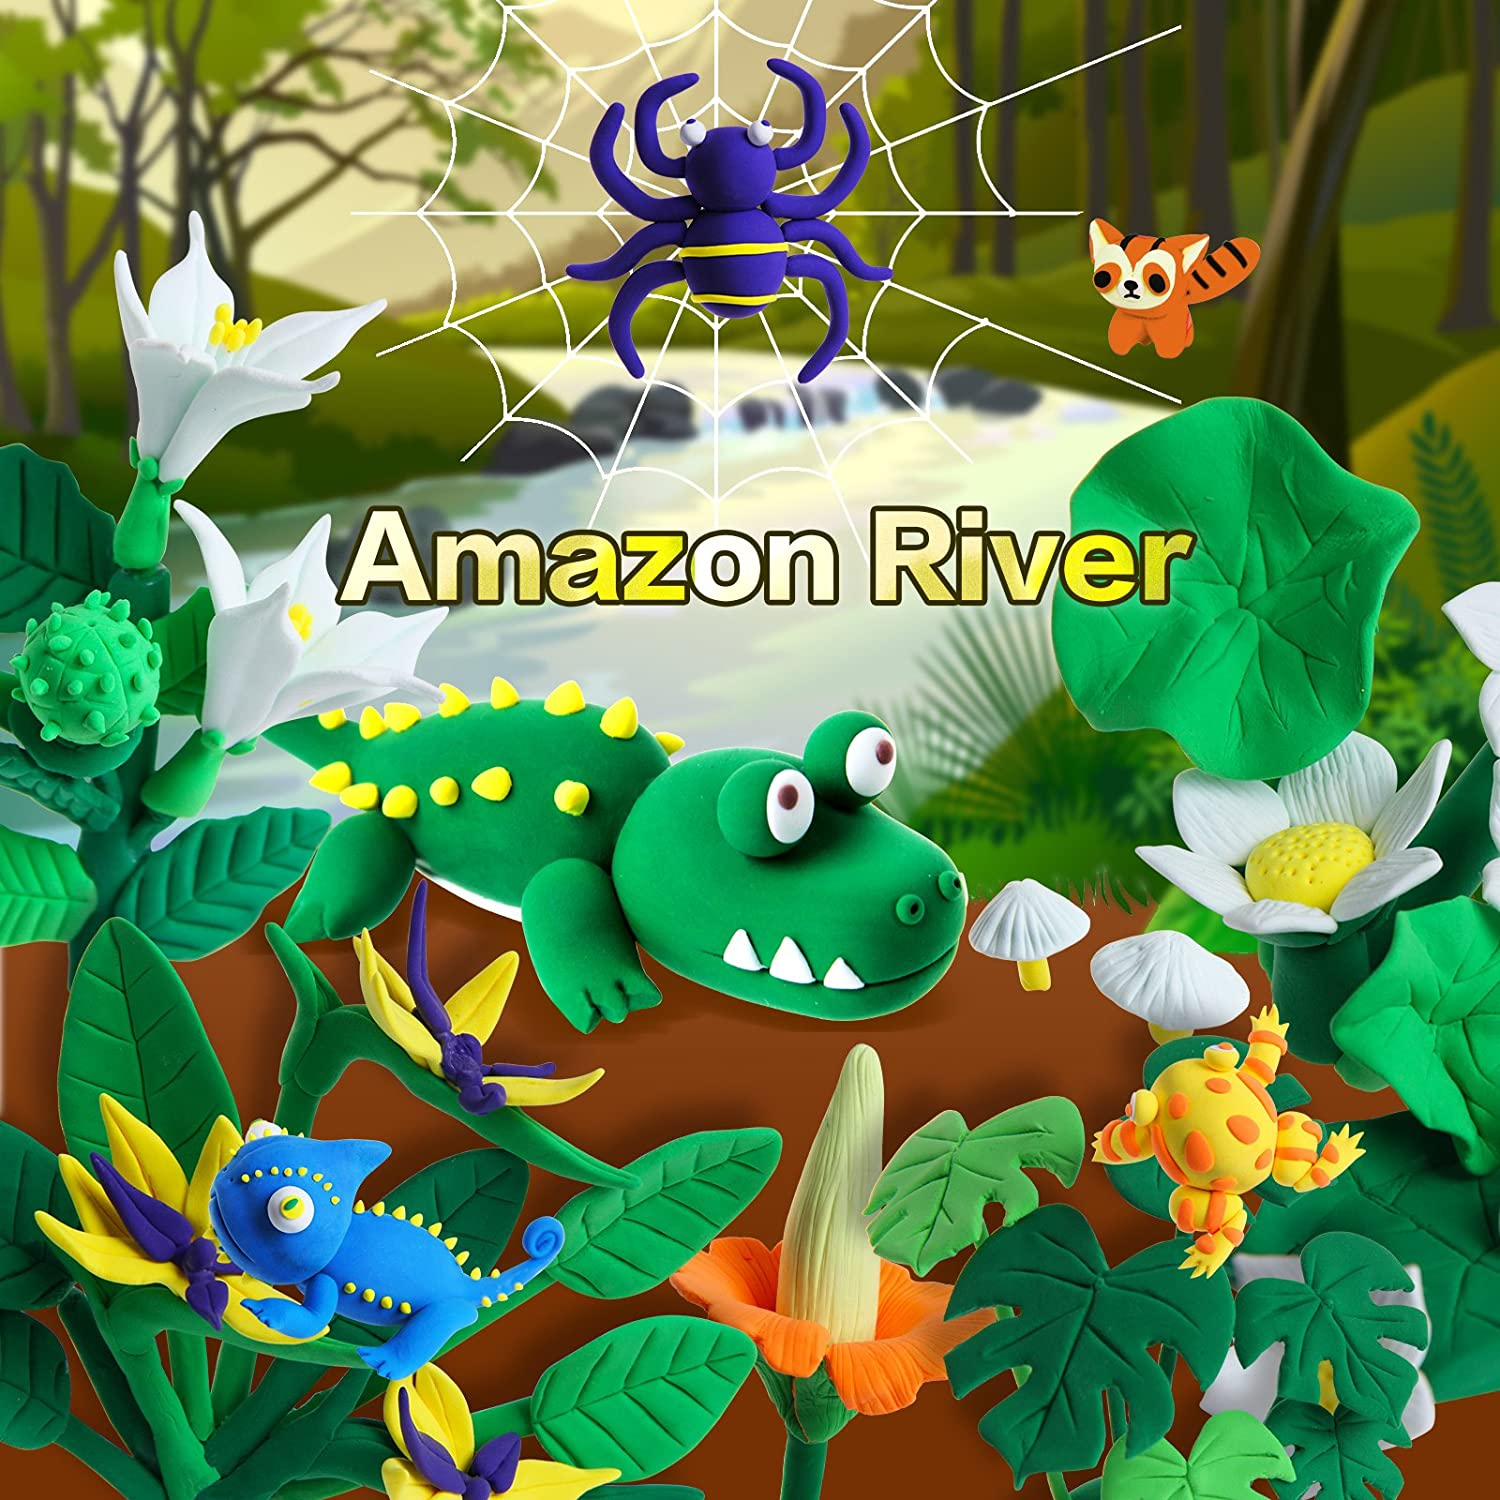 River Adventure Board Game Set AnanBros Air Dry Modeling Magic Clay Modeling Clay Ultra-light Molding Clay for Kids 12-Pack